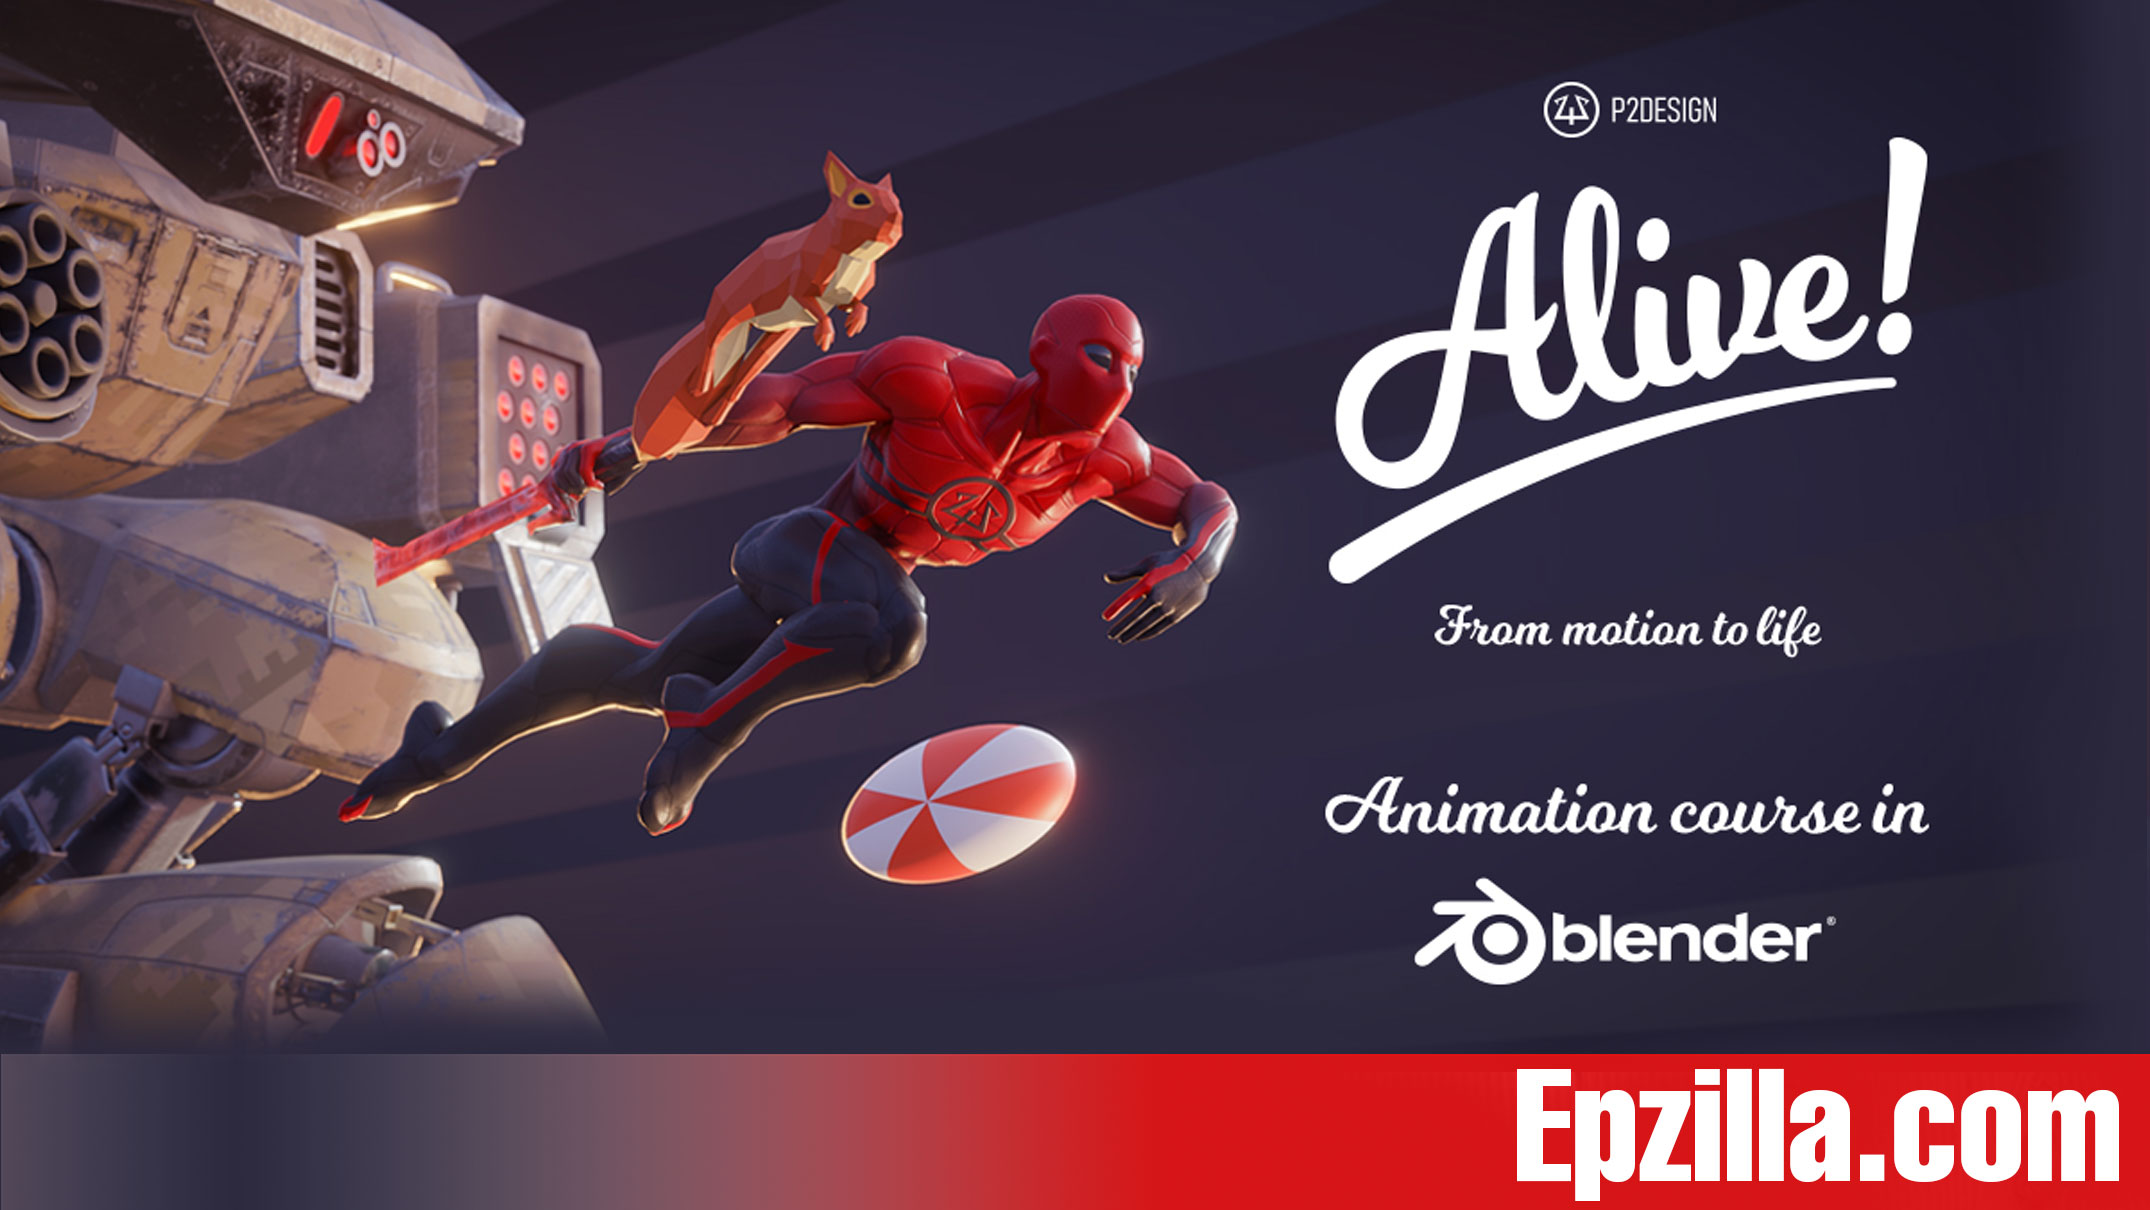 Alive! Animation Course In Blender Free Download Epzilla.com